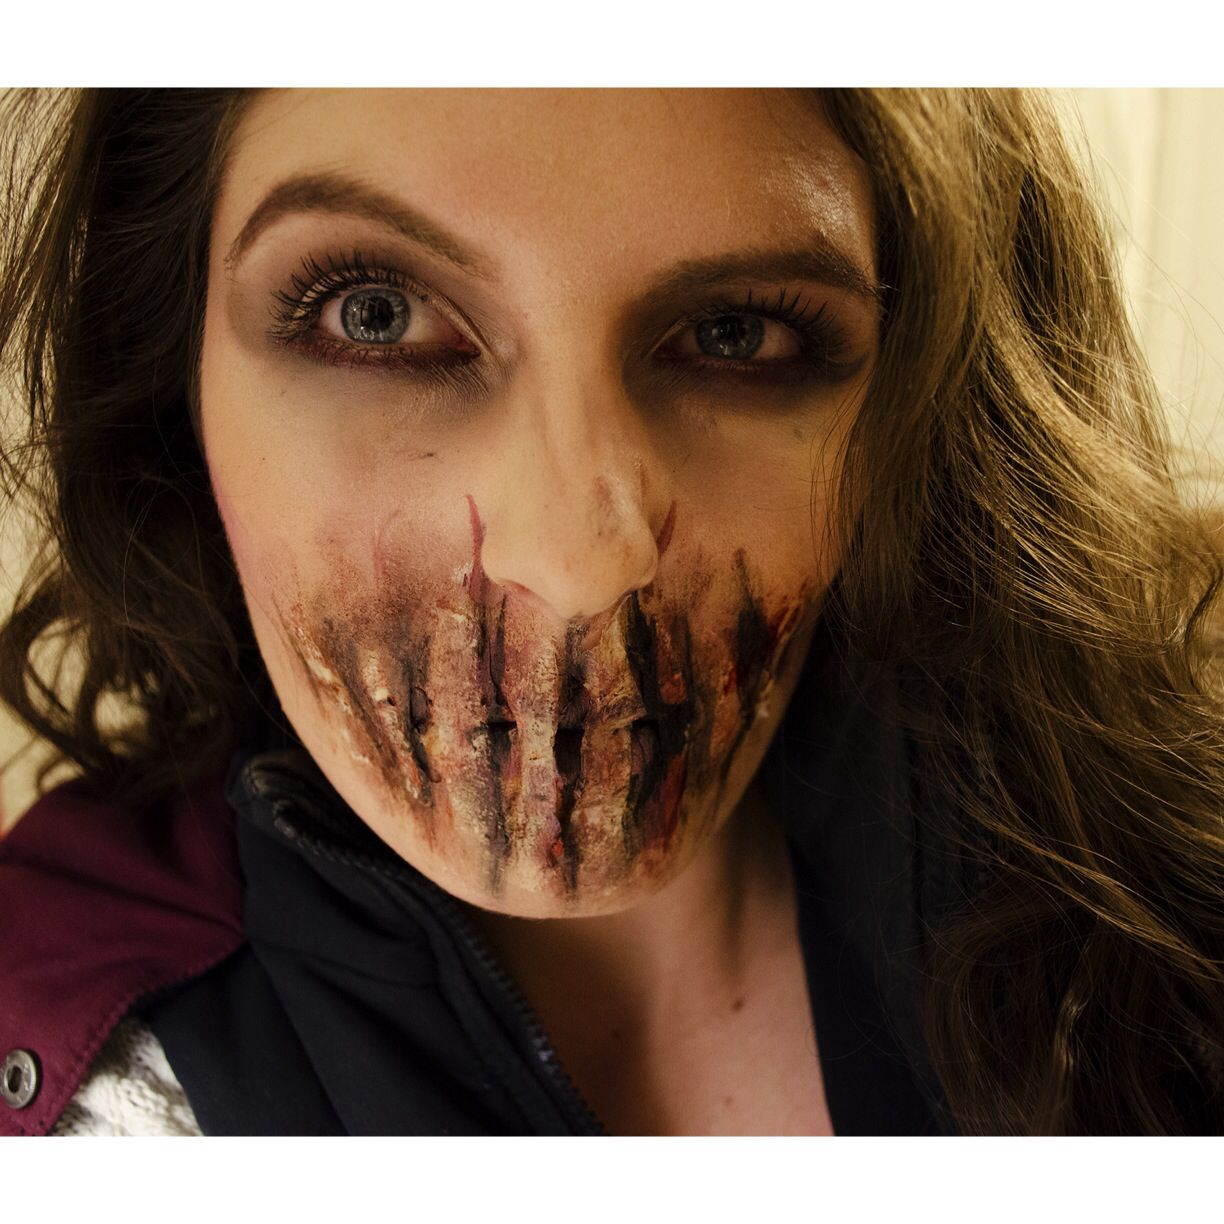 Easy sfx zombie bane halloween makeup facepaint i did this using easy sfx zombie bane halloween makeup facepaint i did this using masking tape tutorial available at youtubefresh82steph solutioingenieria Images